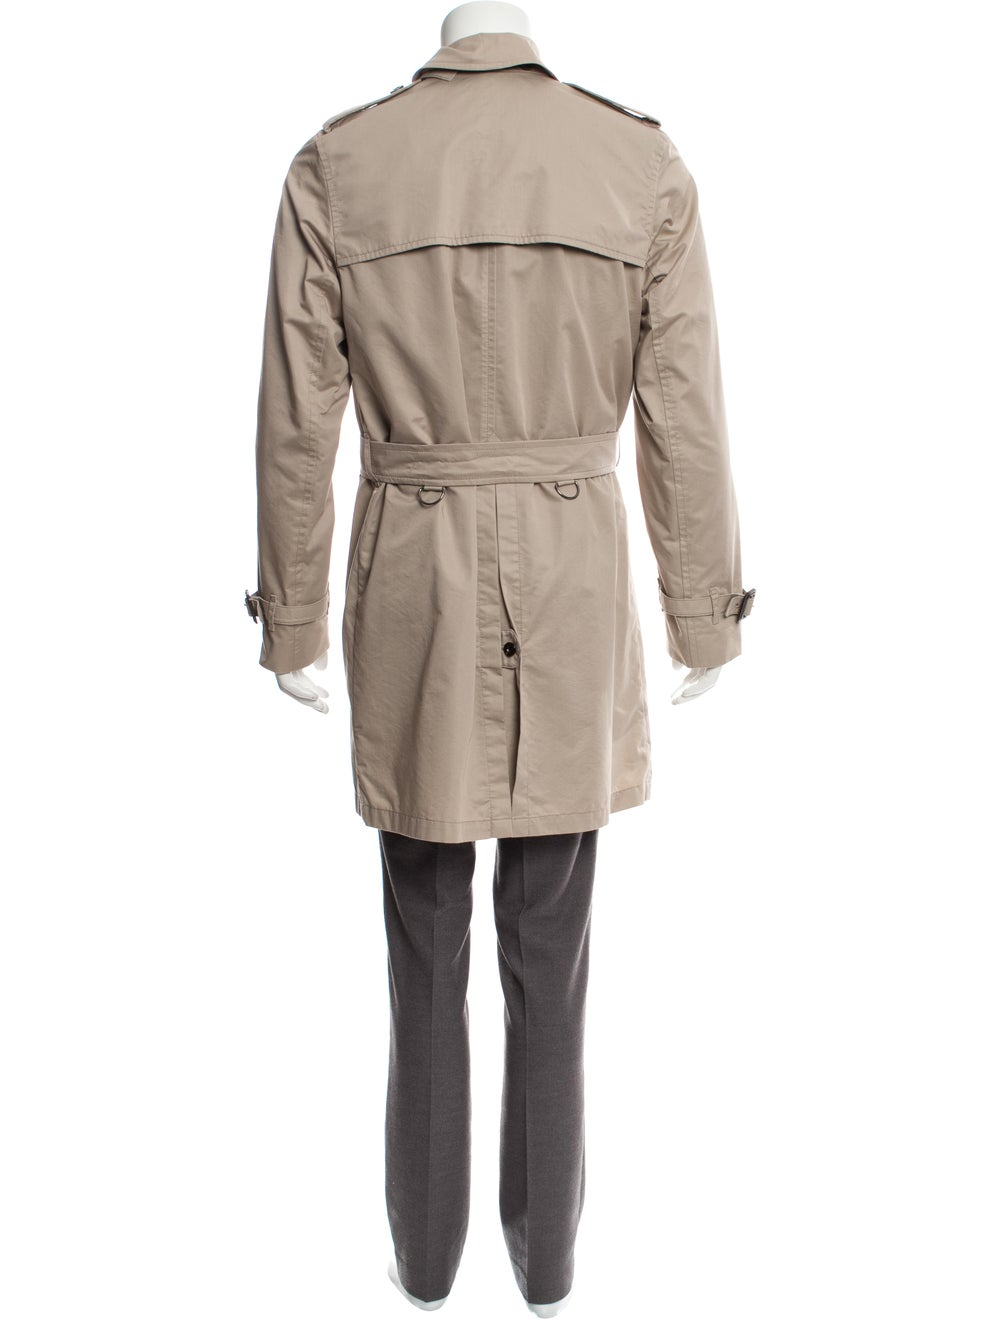 Burberry London Check-Lined Trench Coat beige - image 3